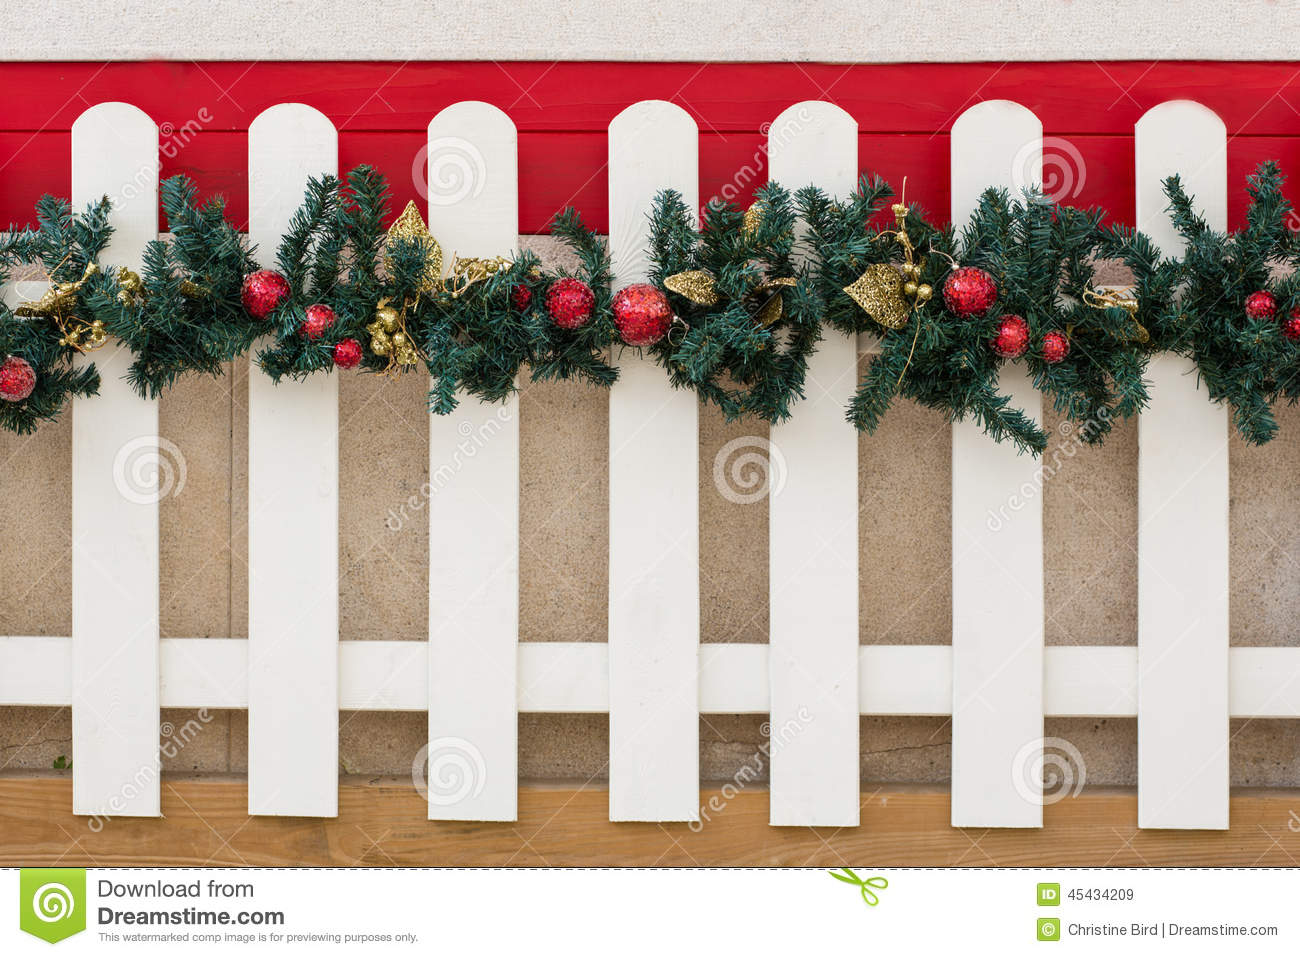 download picket fence and christmas decorations stock image image of celebration shiny 45434209 - Christmas Fence Decorations